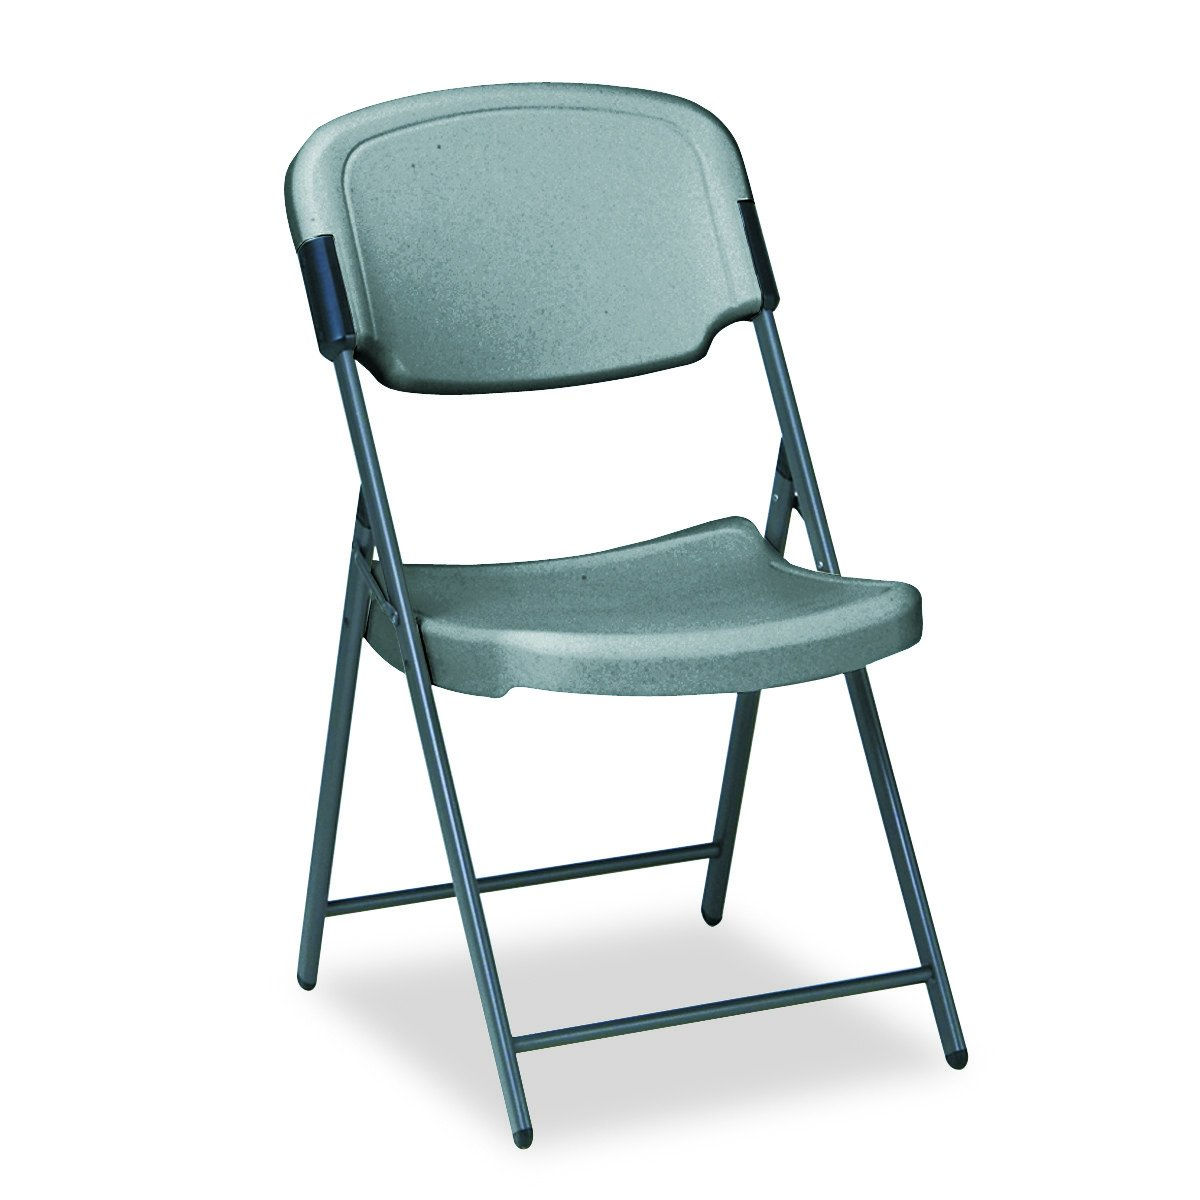 Amazon.com: Iceberg ICE64003 Rough N Ready - Silla plegable ...